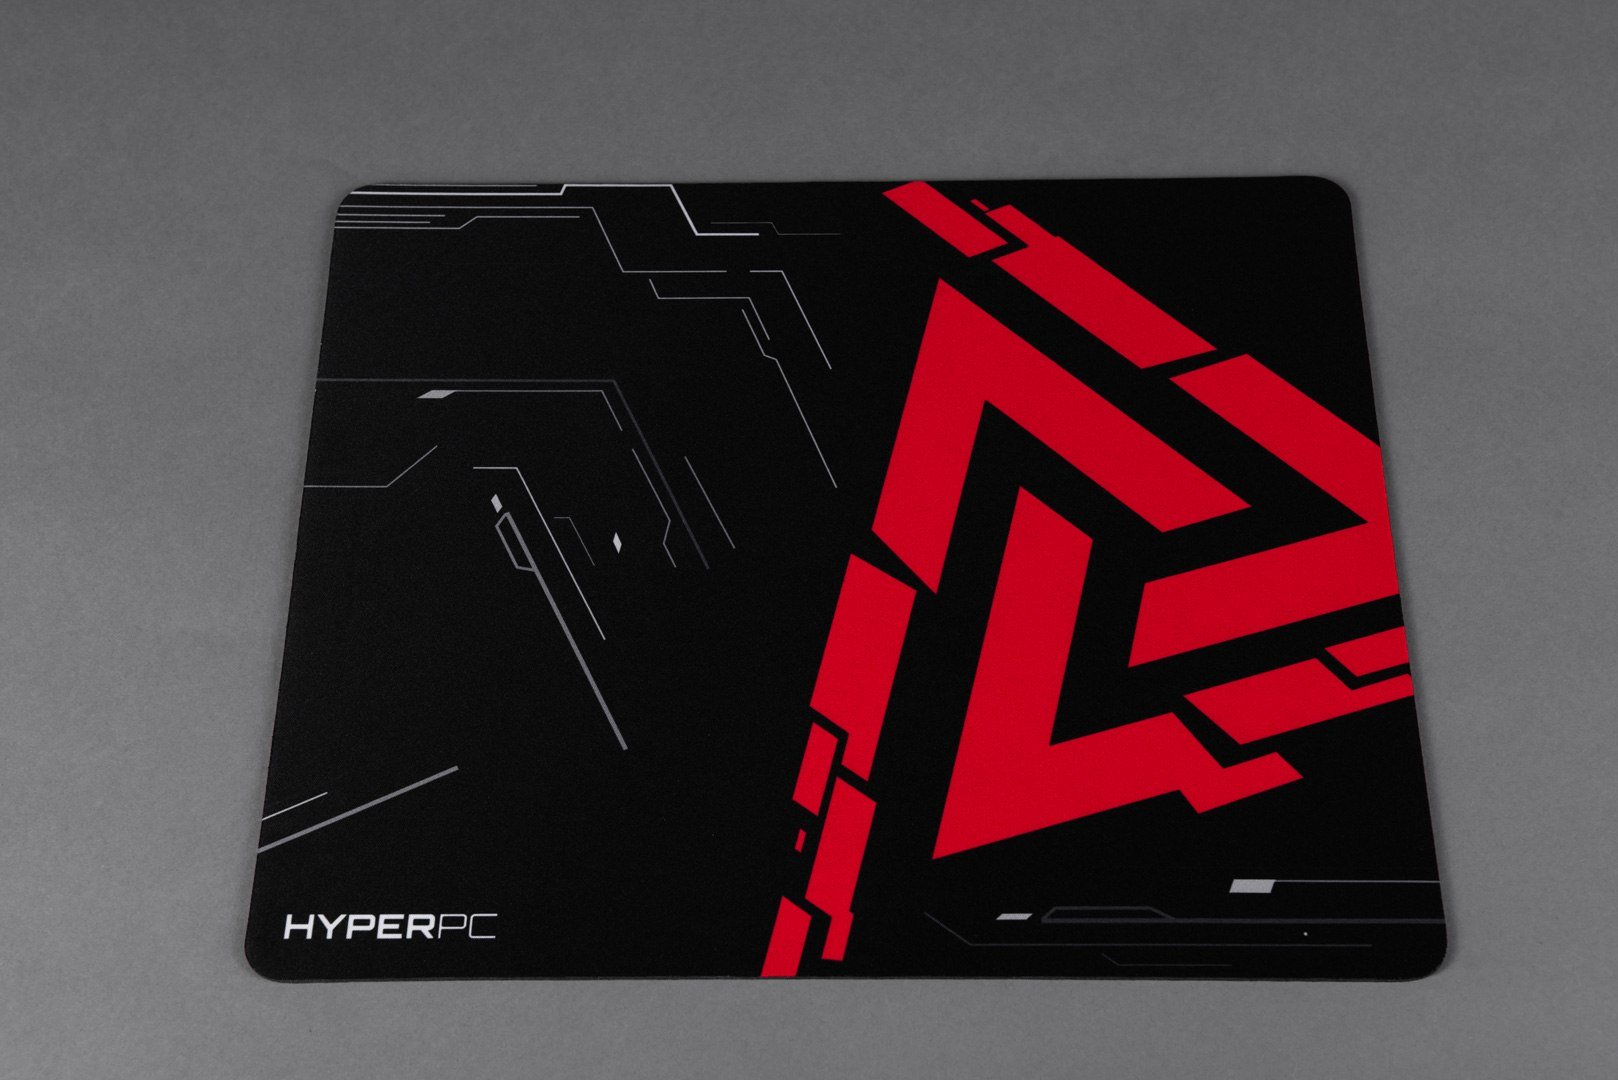 hyperpc mouse pad 01